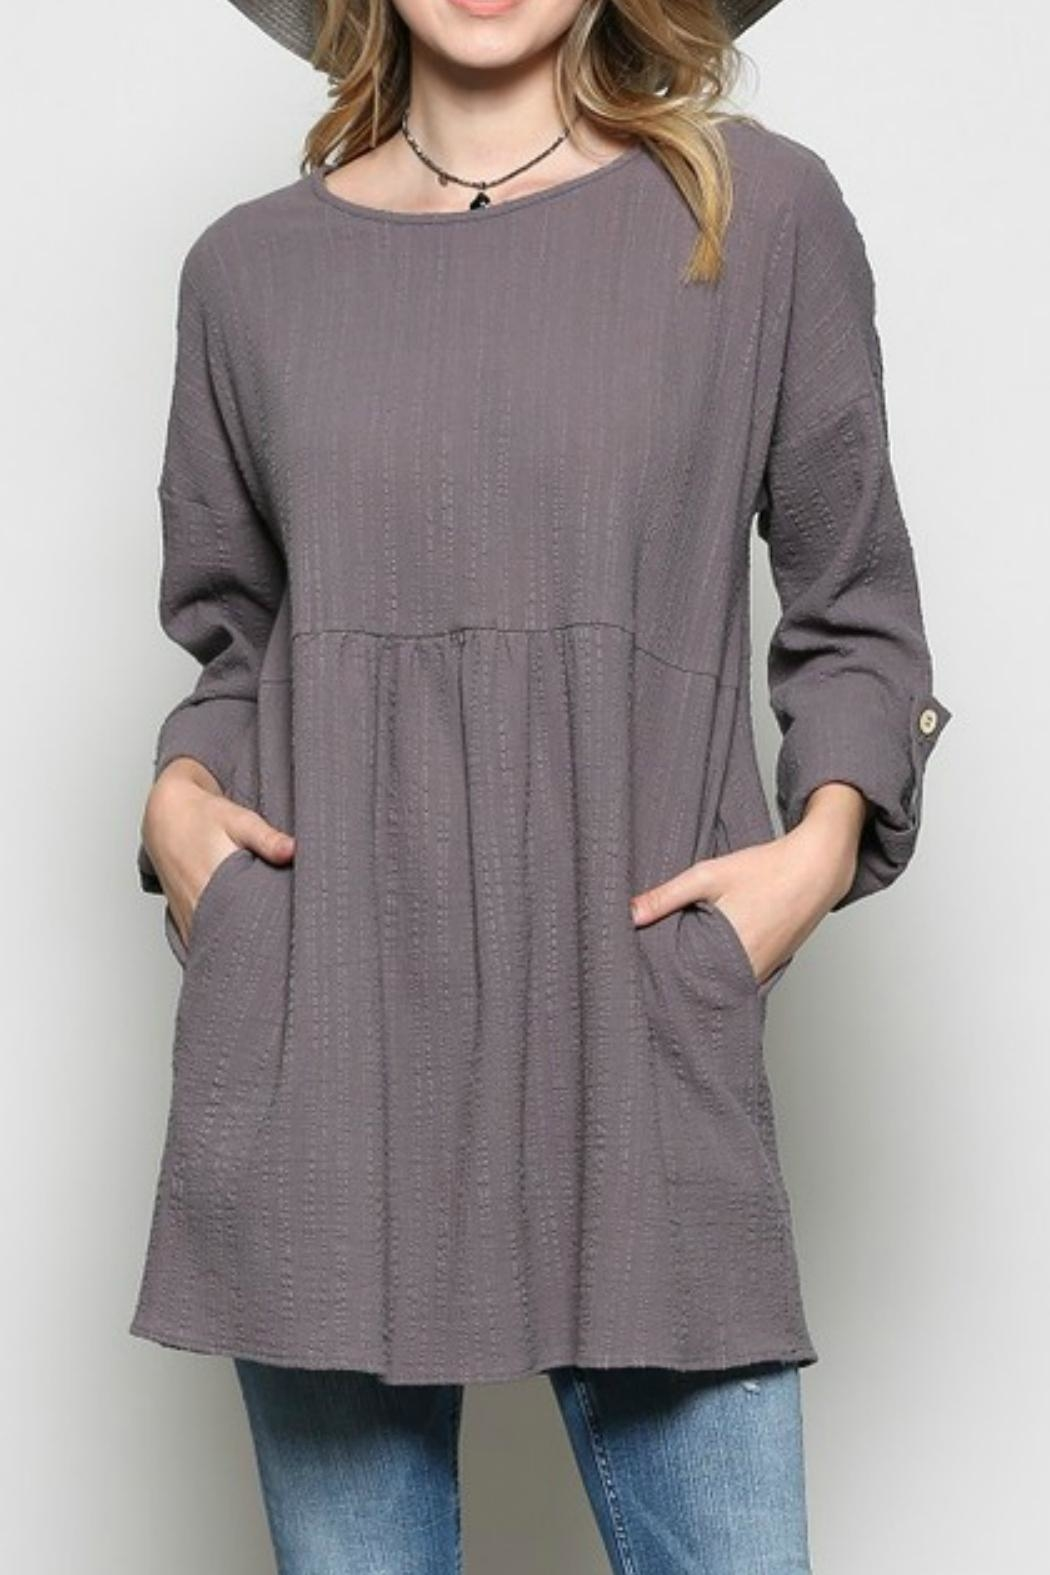 Joy Accessories Pocketed Peasant Tunic - Main Image